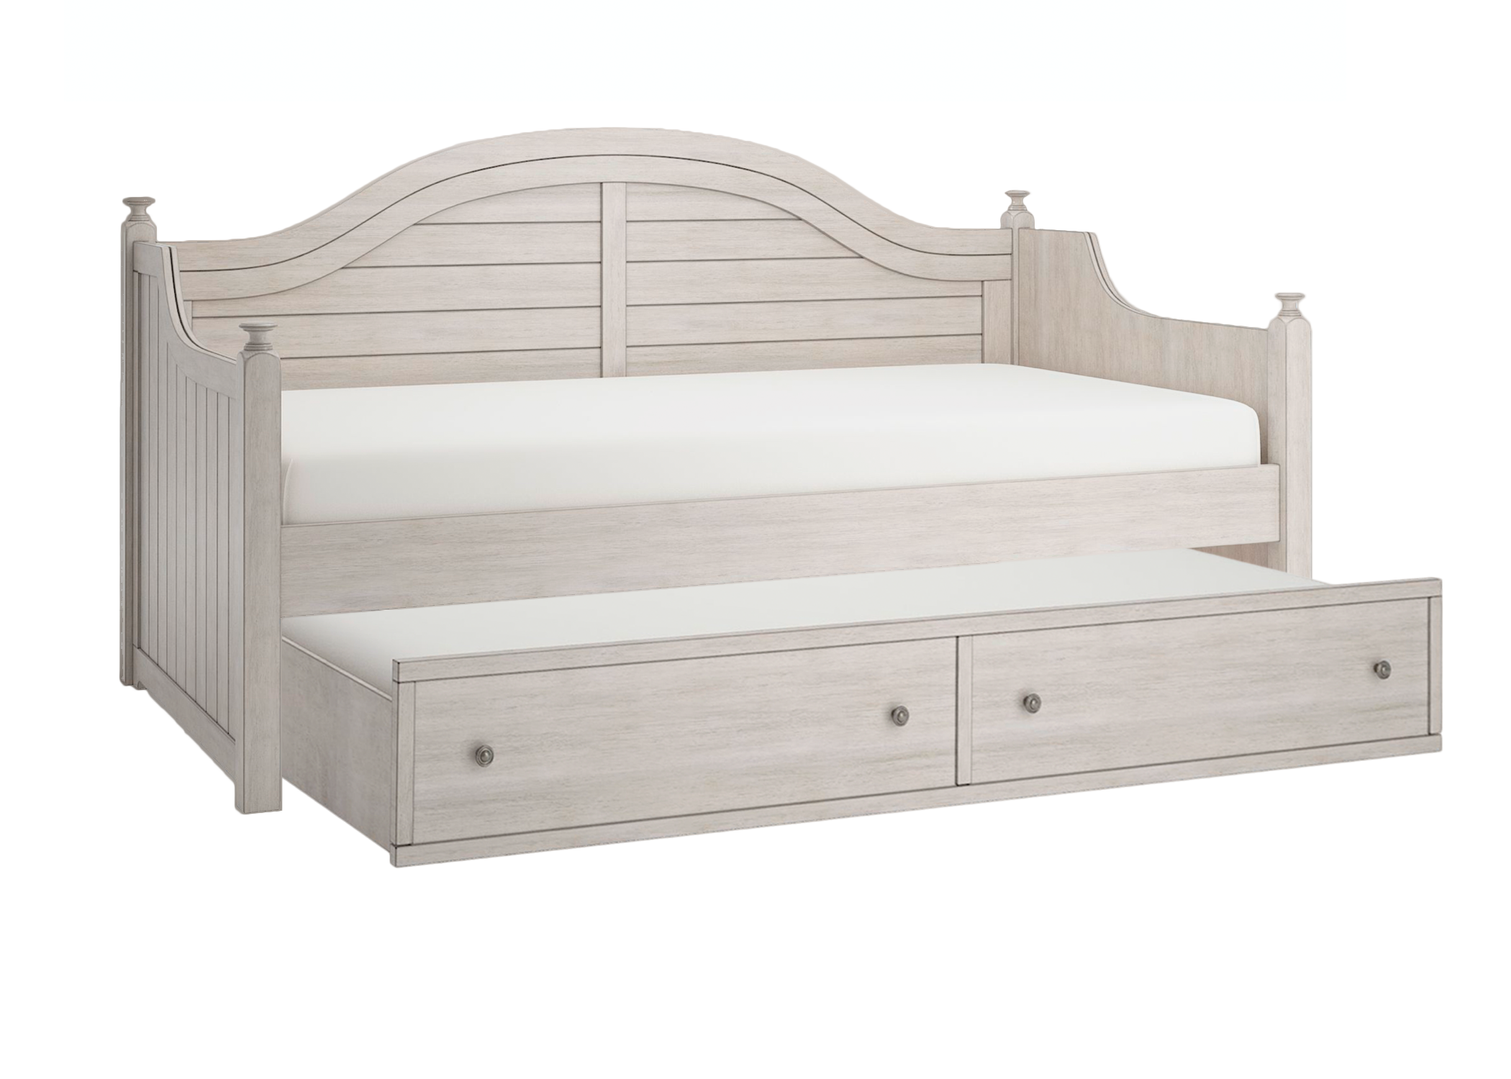 The Avery Daybed